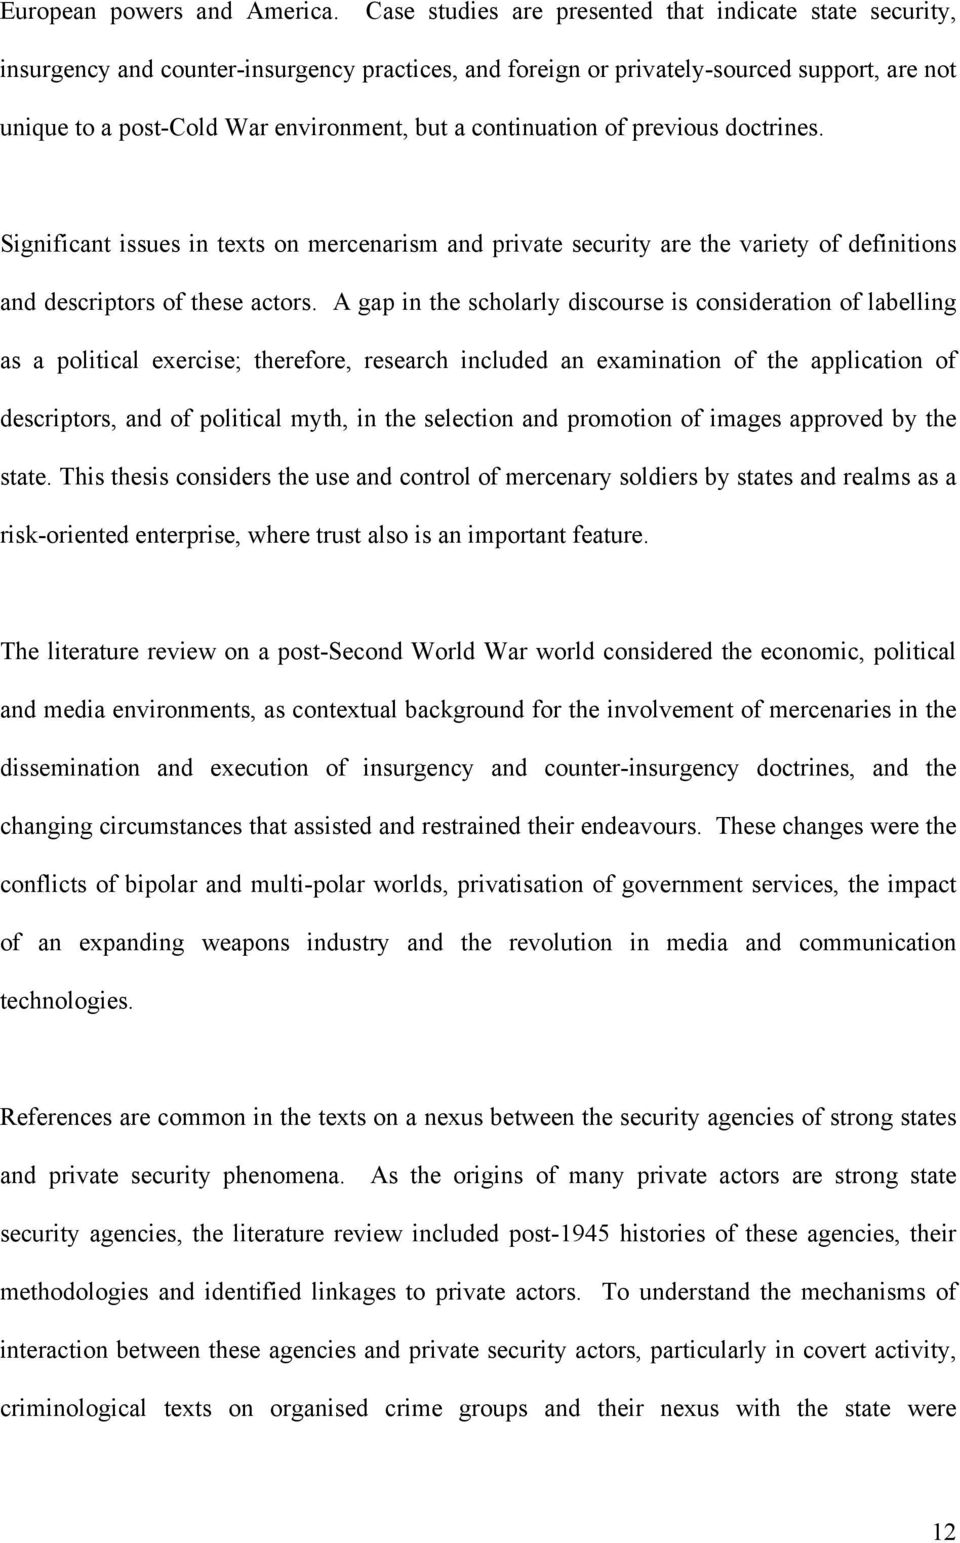 continuation of previous doctrines. Significant issues in texts on mercenarism and private security are the variety of definitions and descriptors of these actors.